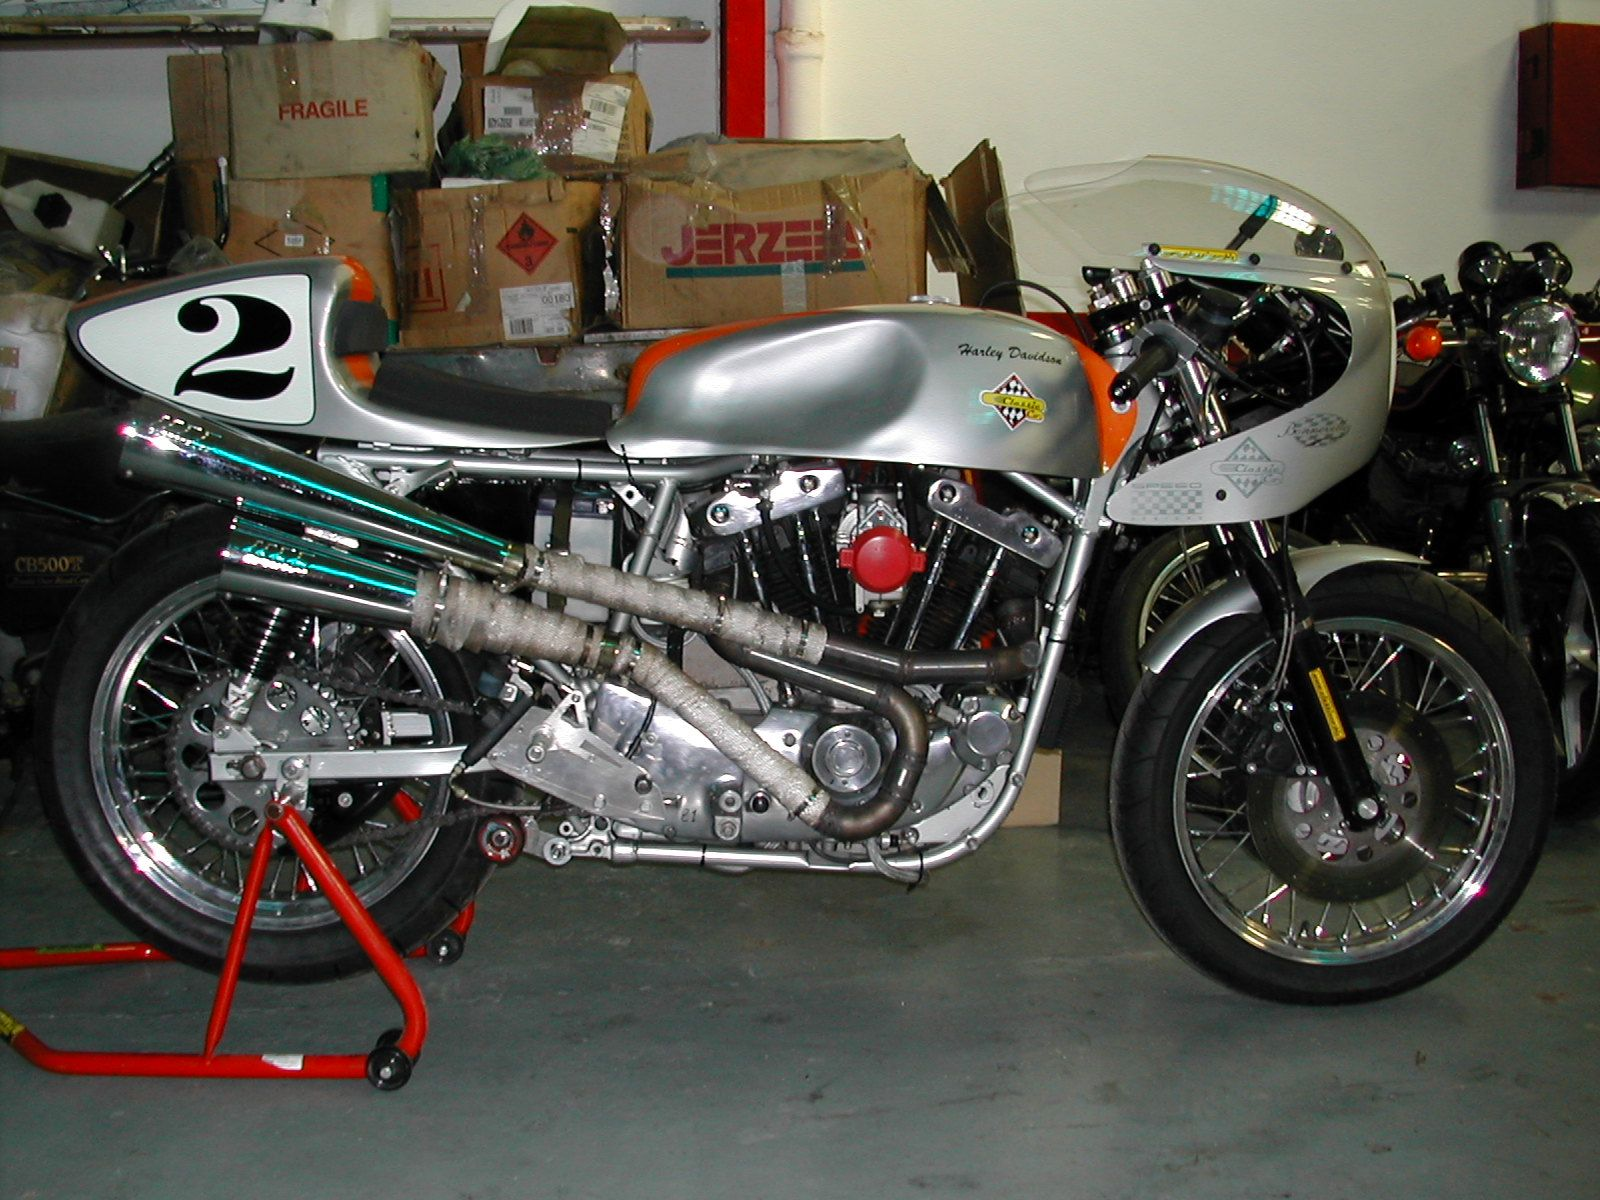 Endurance Racing Motorcycles From The 1960s